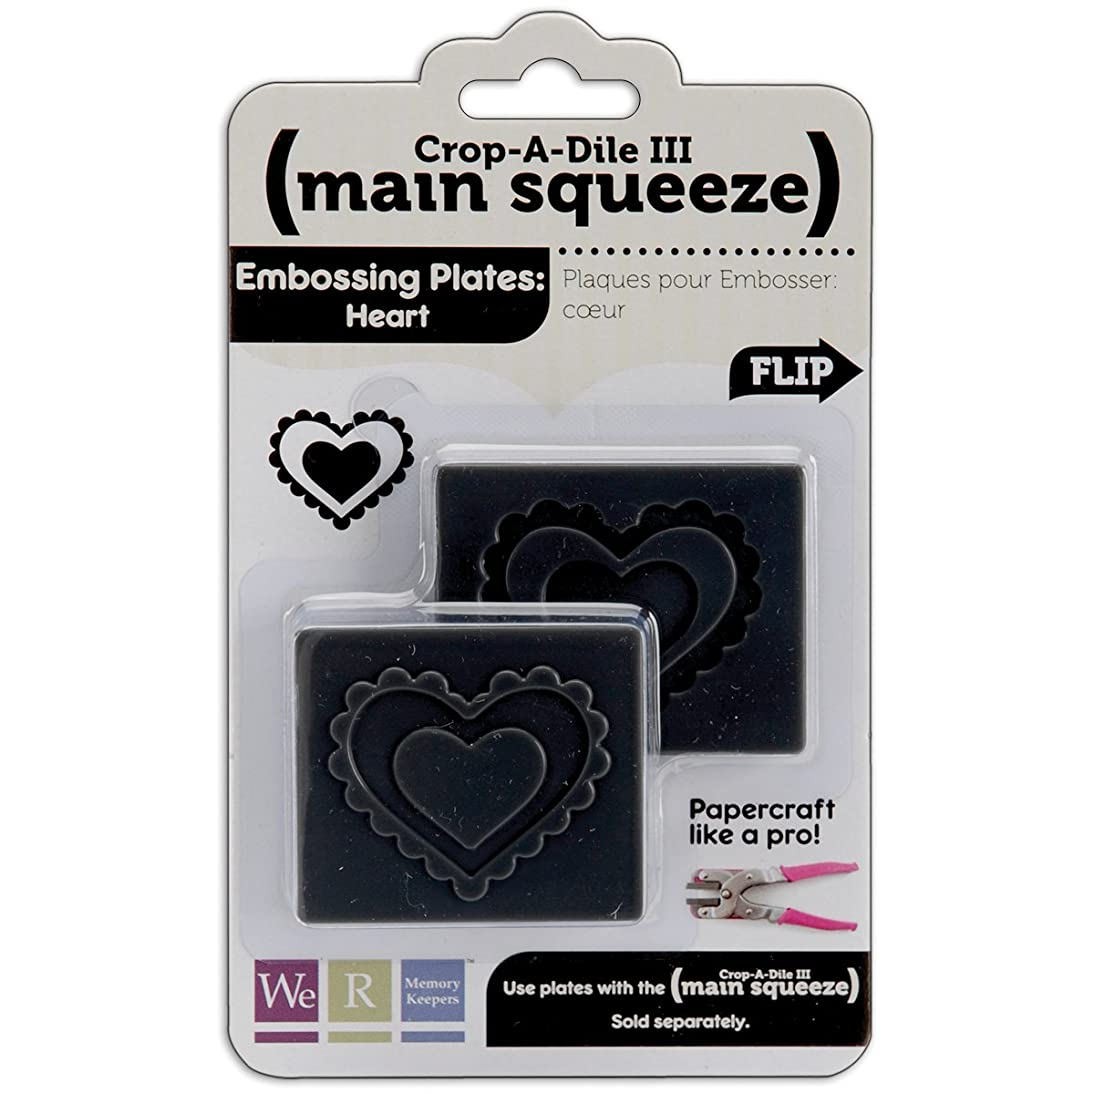 American Crafts We R Memory Keepers Crop-A-Dile III Main Squeeze Embossed Supplies, Heart